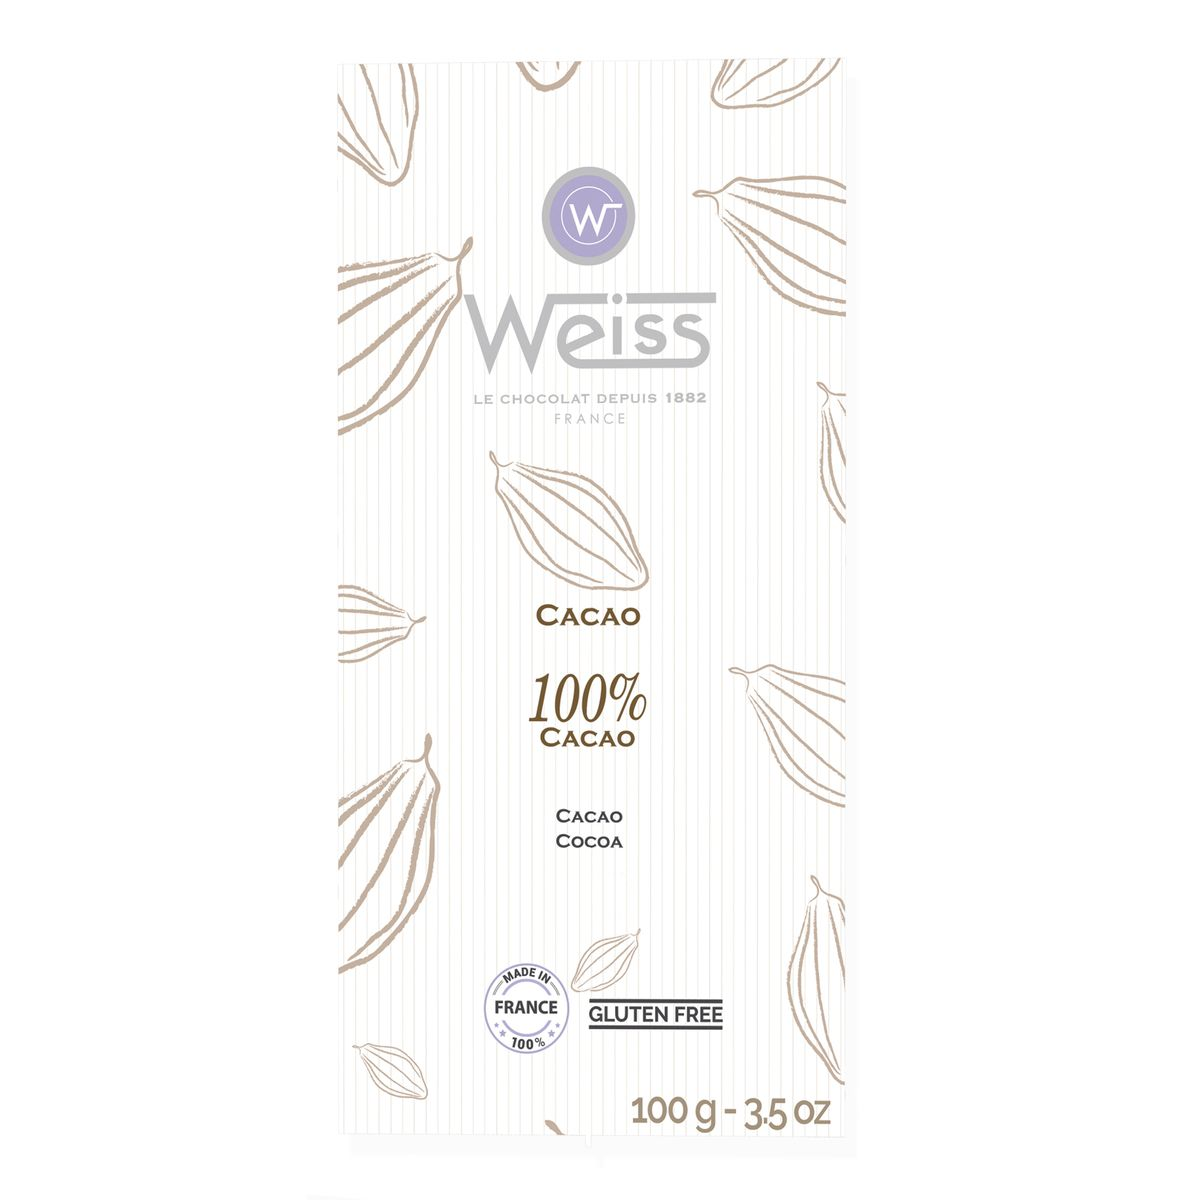 Tablette 100g 100% cacao plie - Weiss